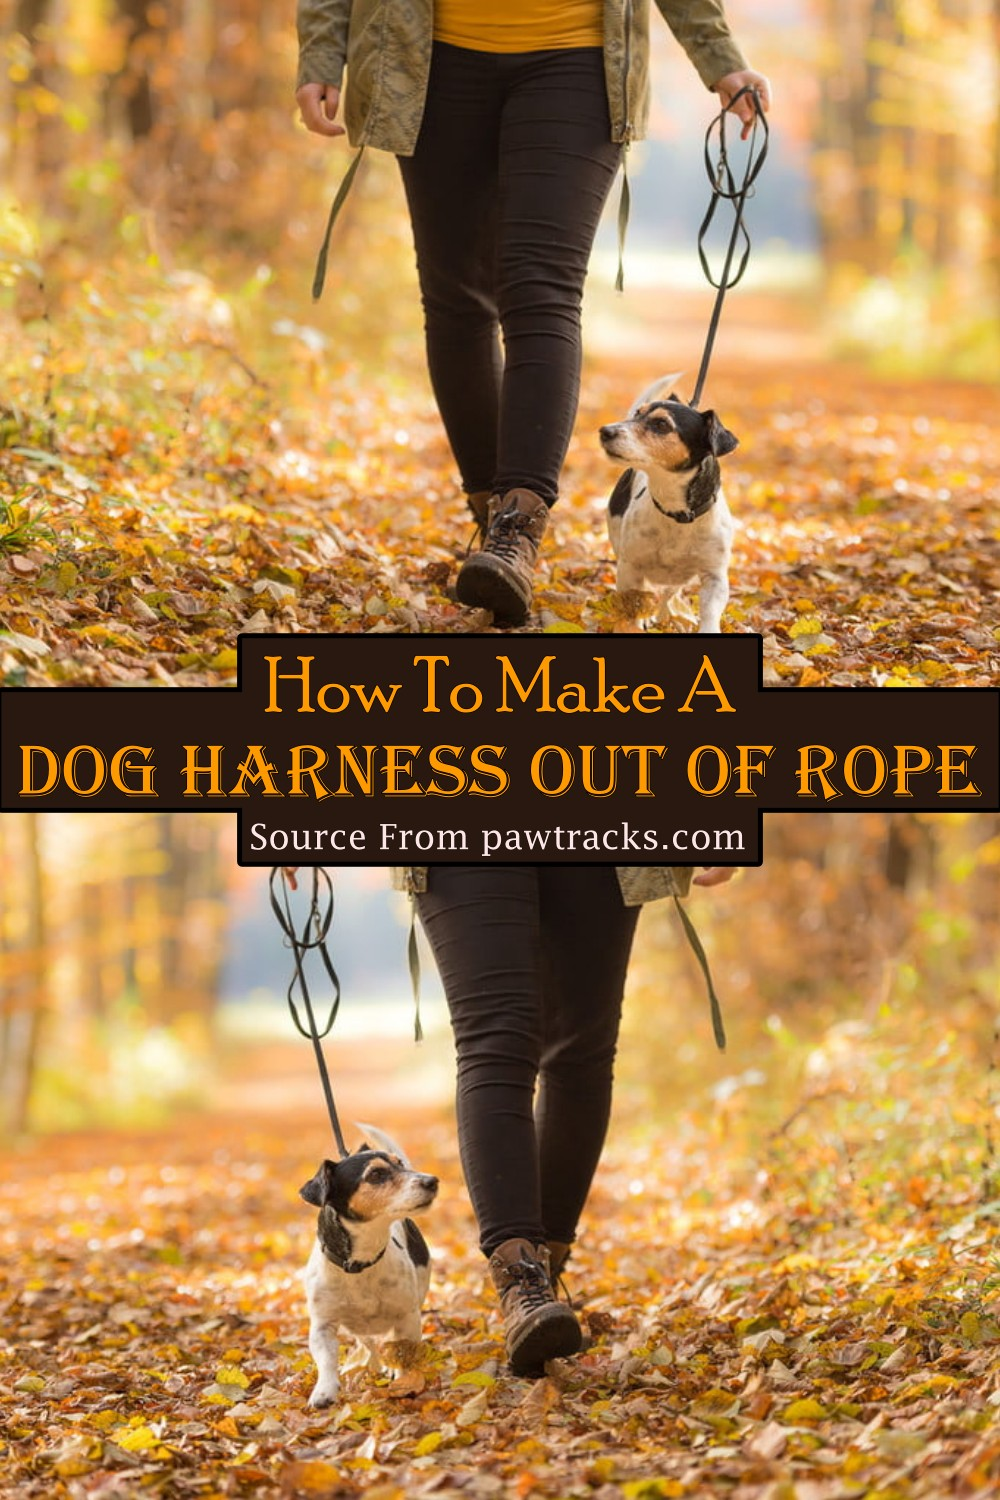 How To Make A Dog Harness Out Of Rope